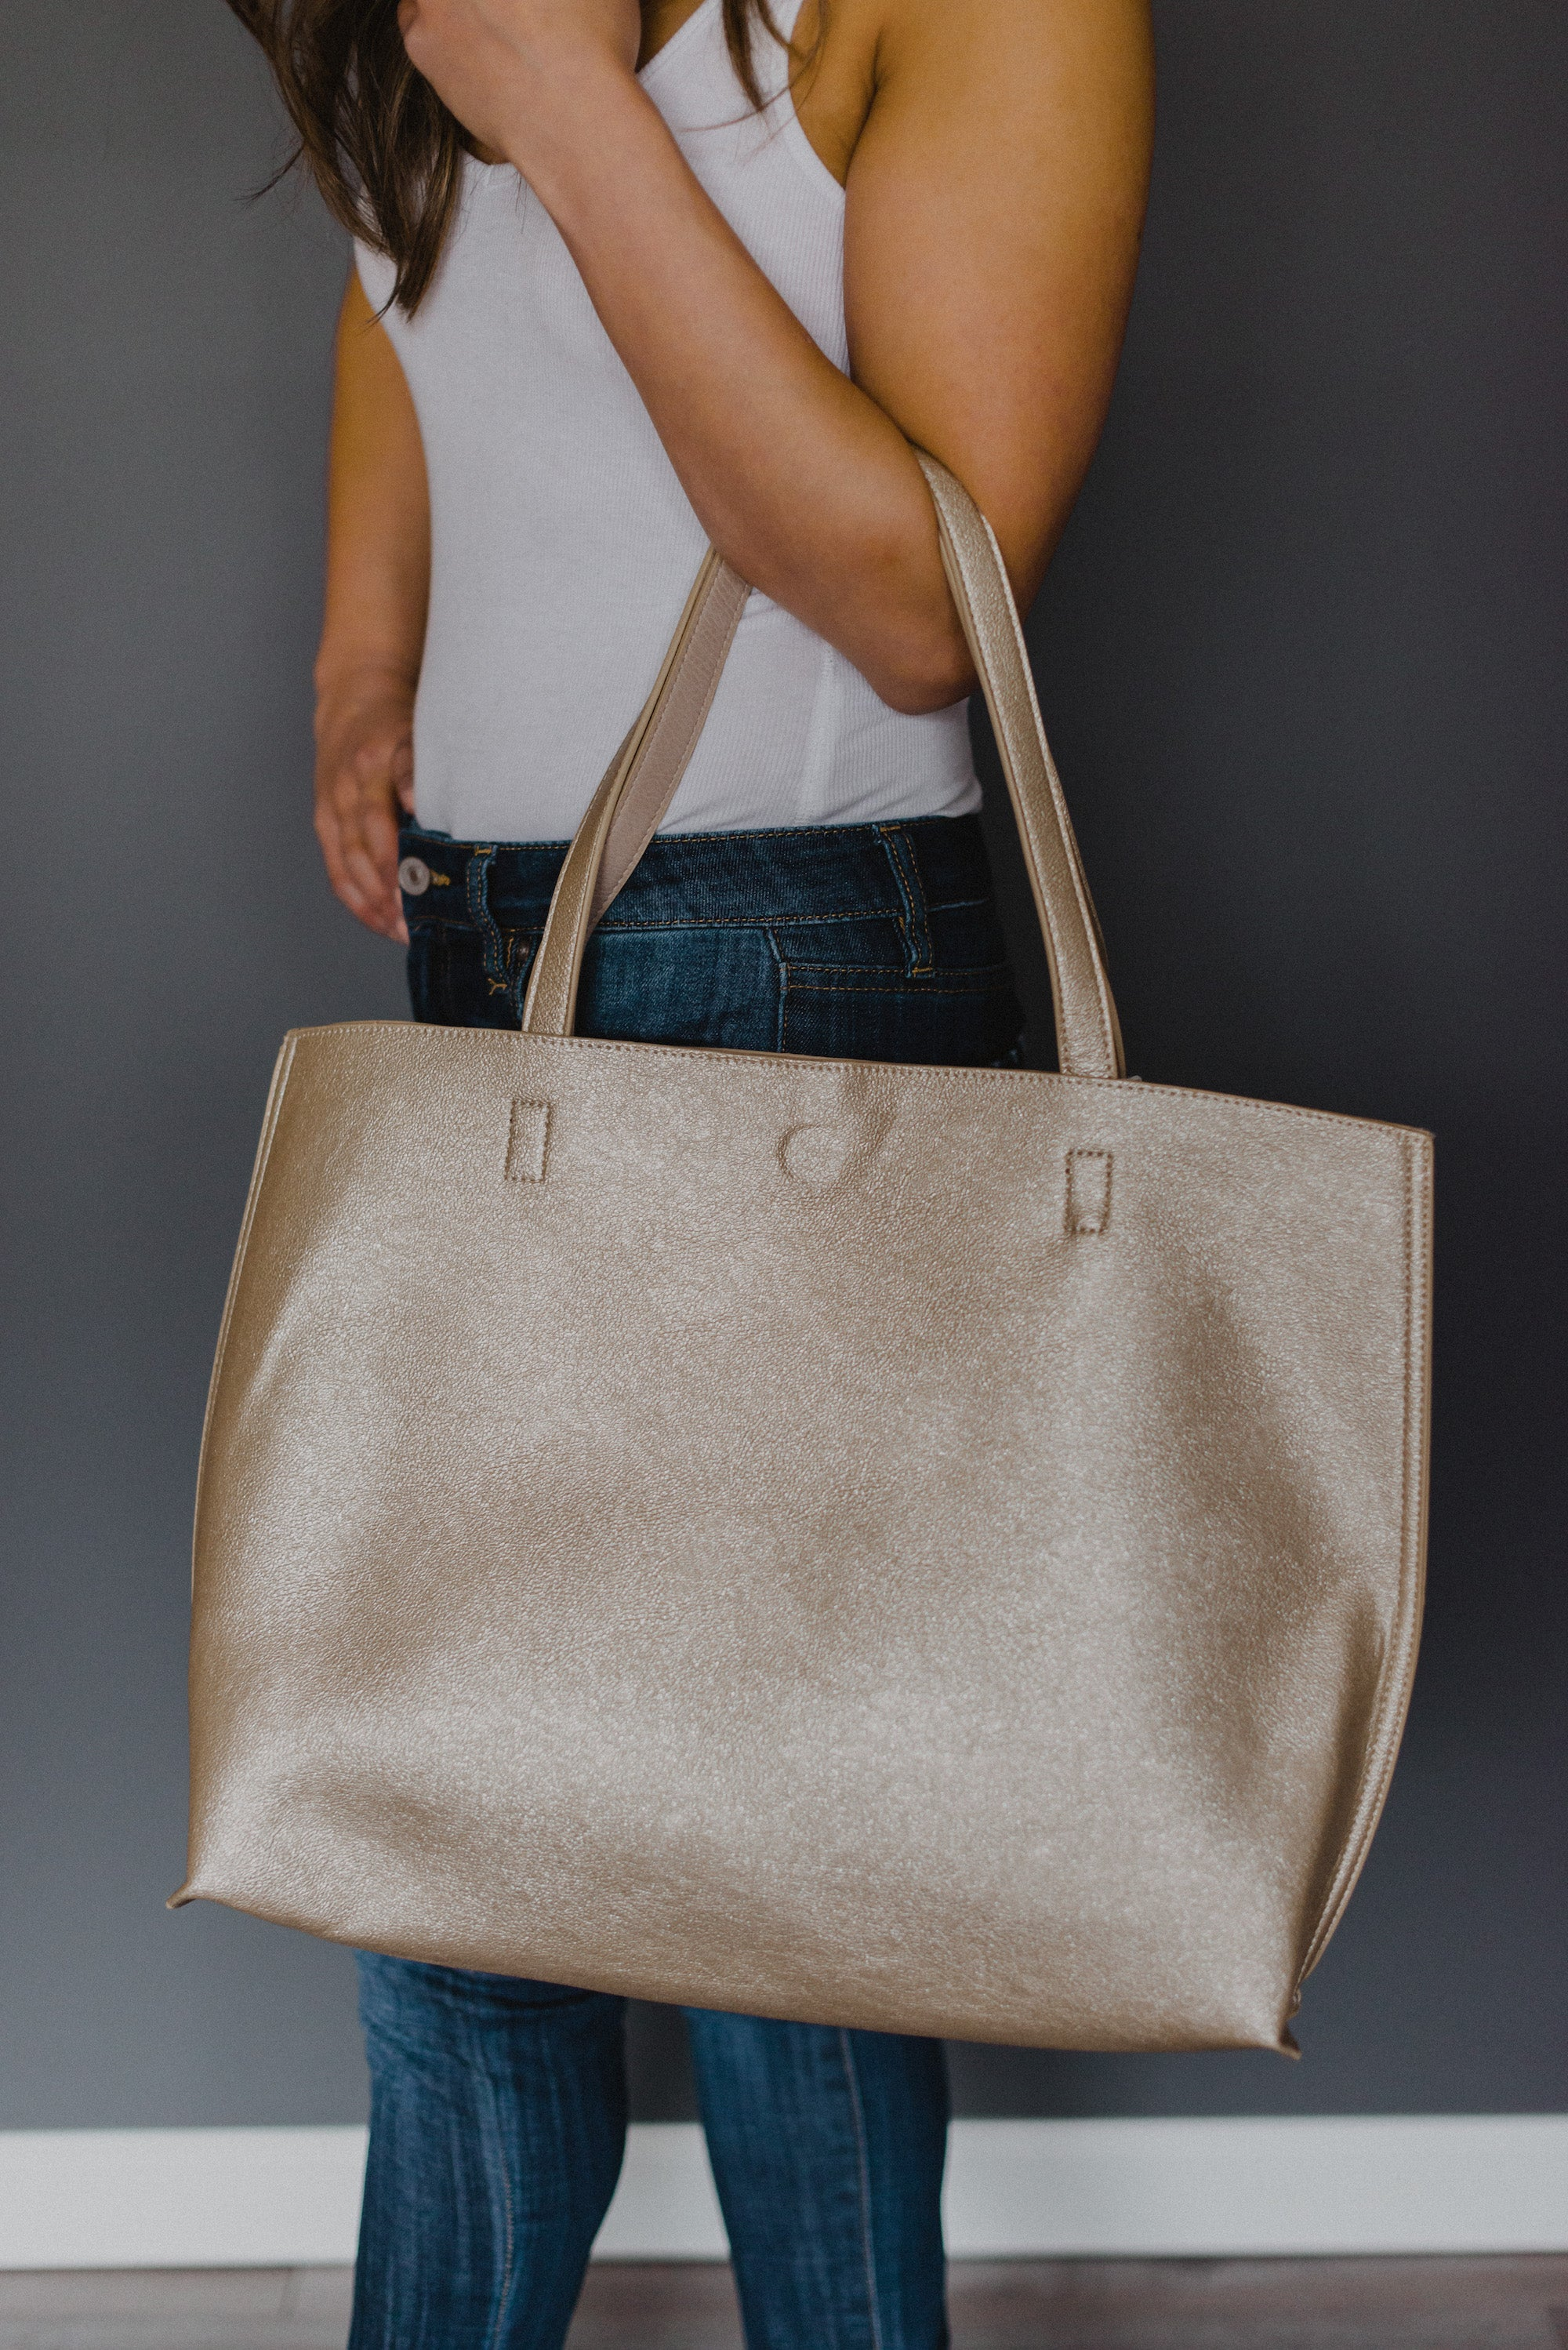 Out for the Day Tote Reversible Bag in Champagne/Stone